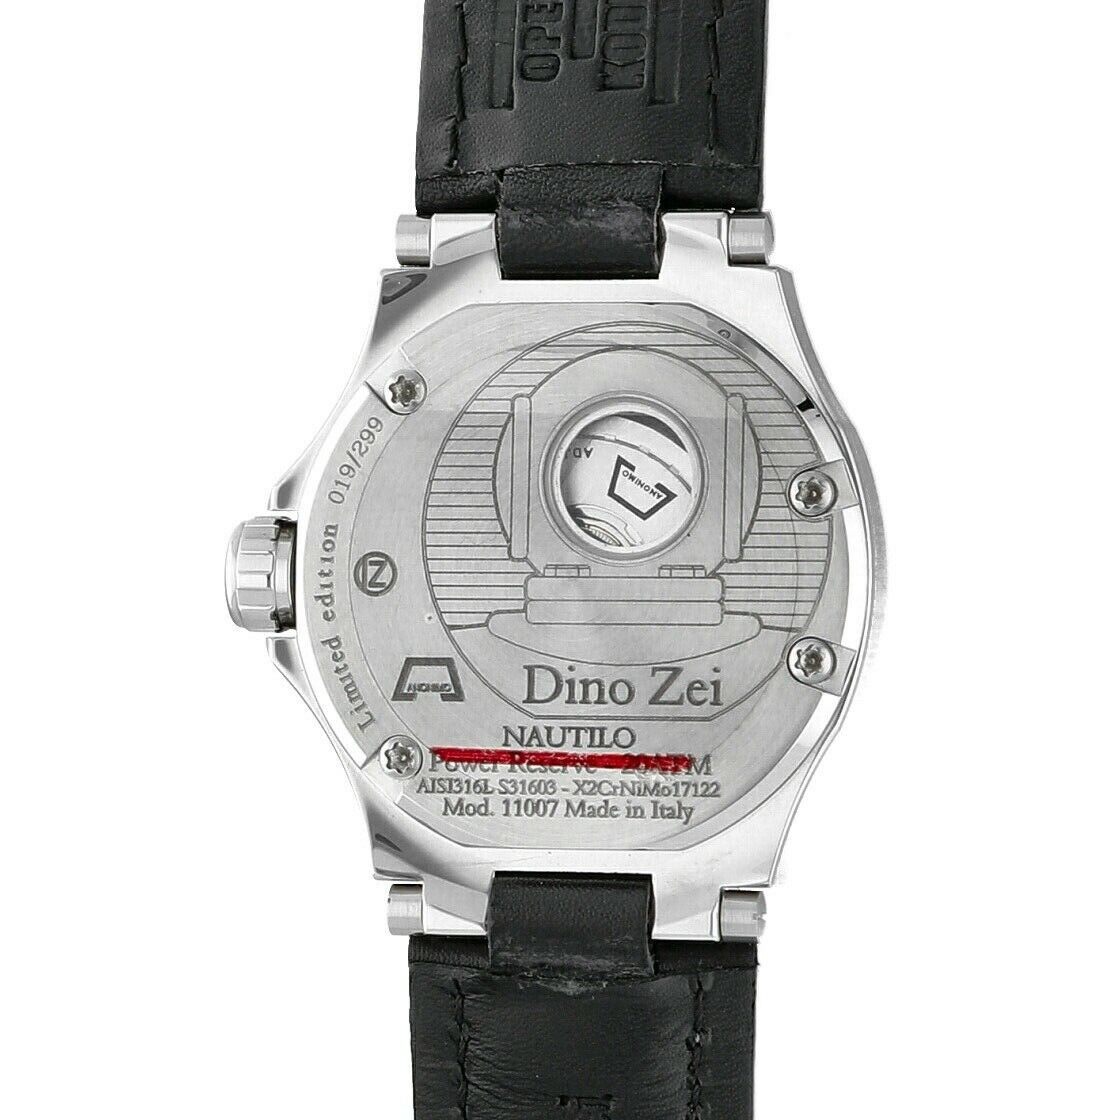 Dino Zei Nautilo Limited Edition 11007 Steel 455 Leather Automatic Mens Watch 114270758432 8